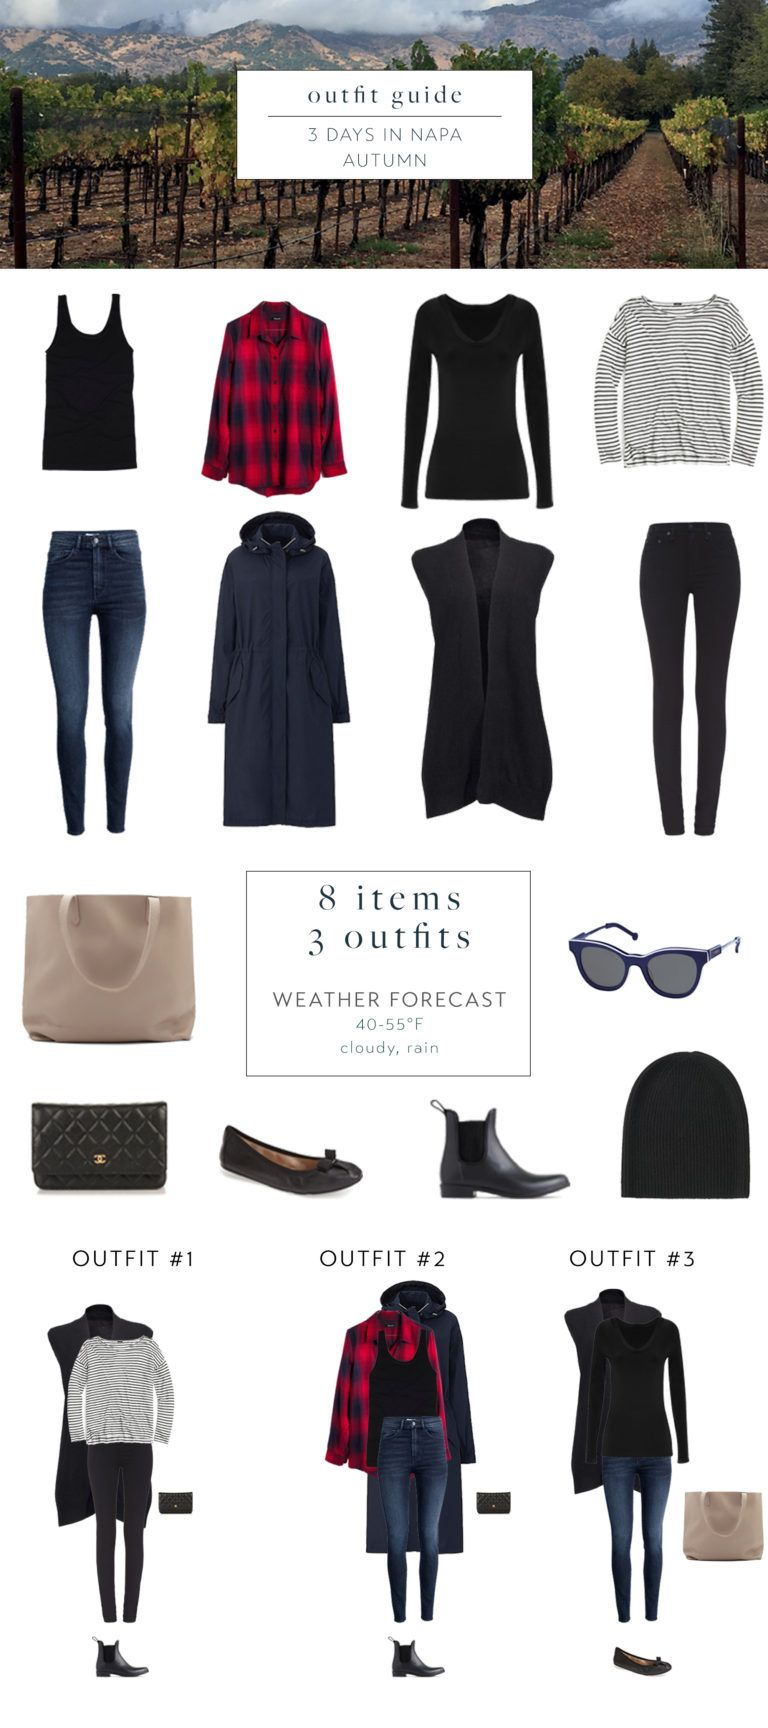 dbd4a1ed4f6 A casual and carry-on only packing list for a fall weekend in Napa Valley